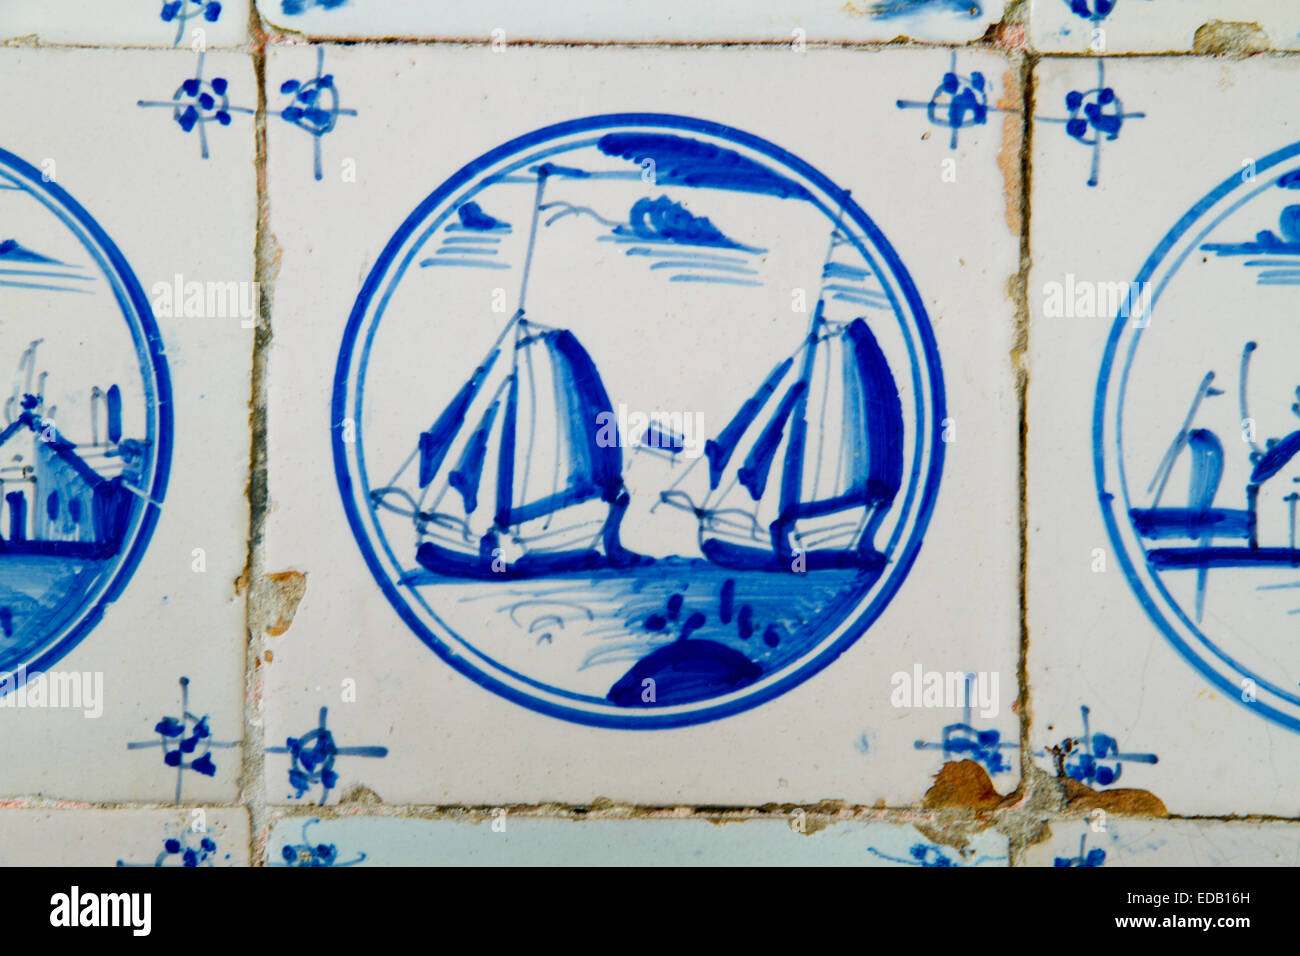 Painting of two sailing ships on an antique dutch tile on the kitchen wall of an old building - Stock Image